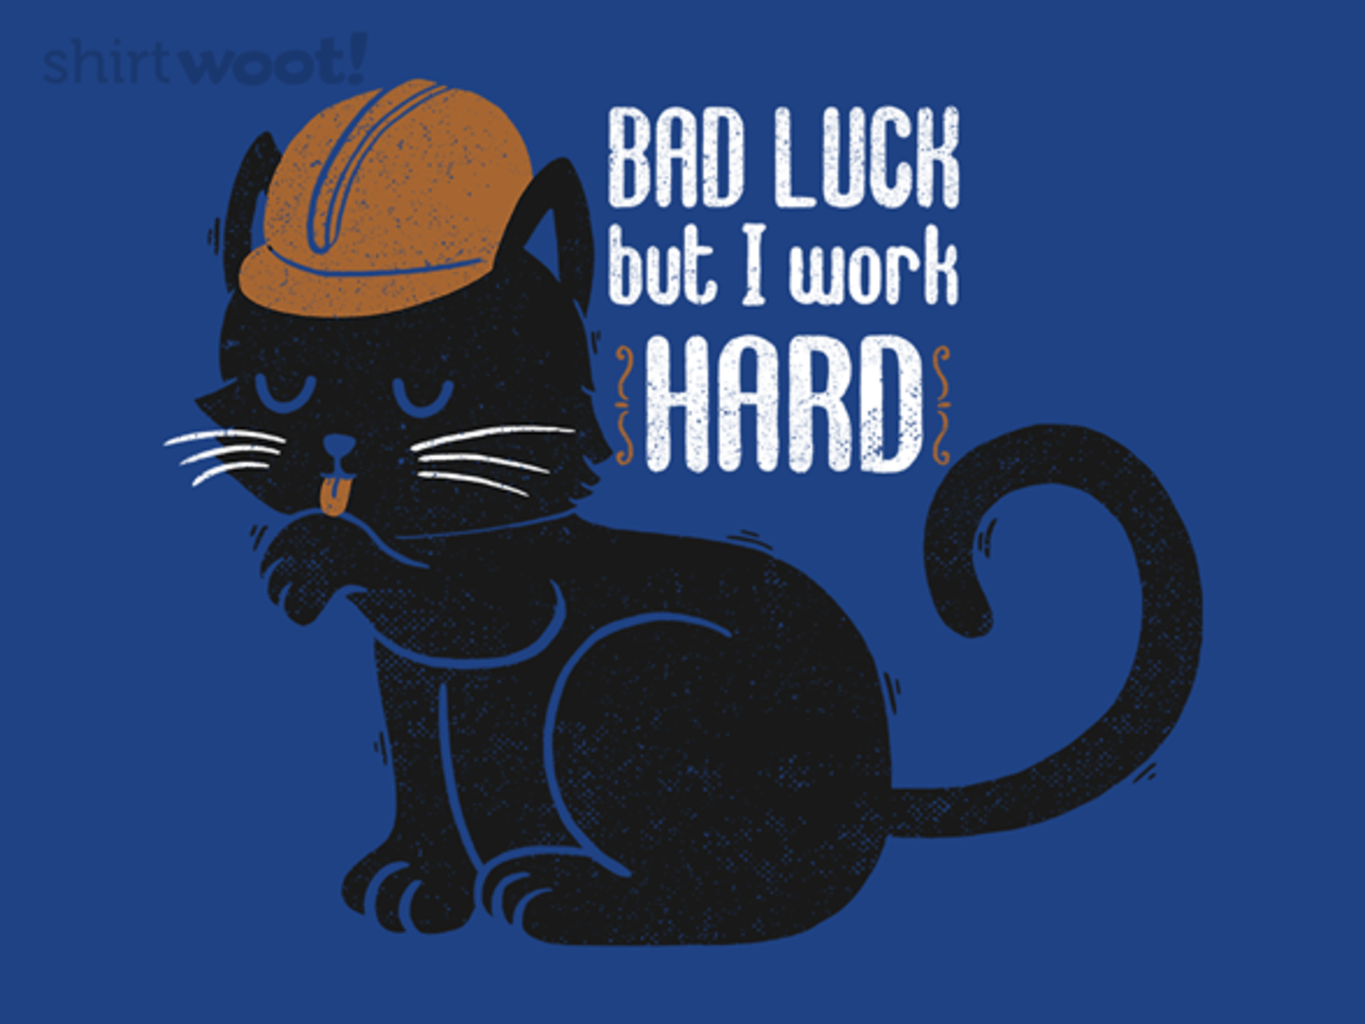 Woot!: Bad Luck, But I Work Hard